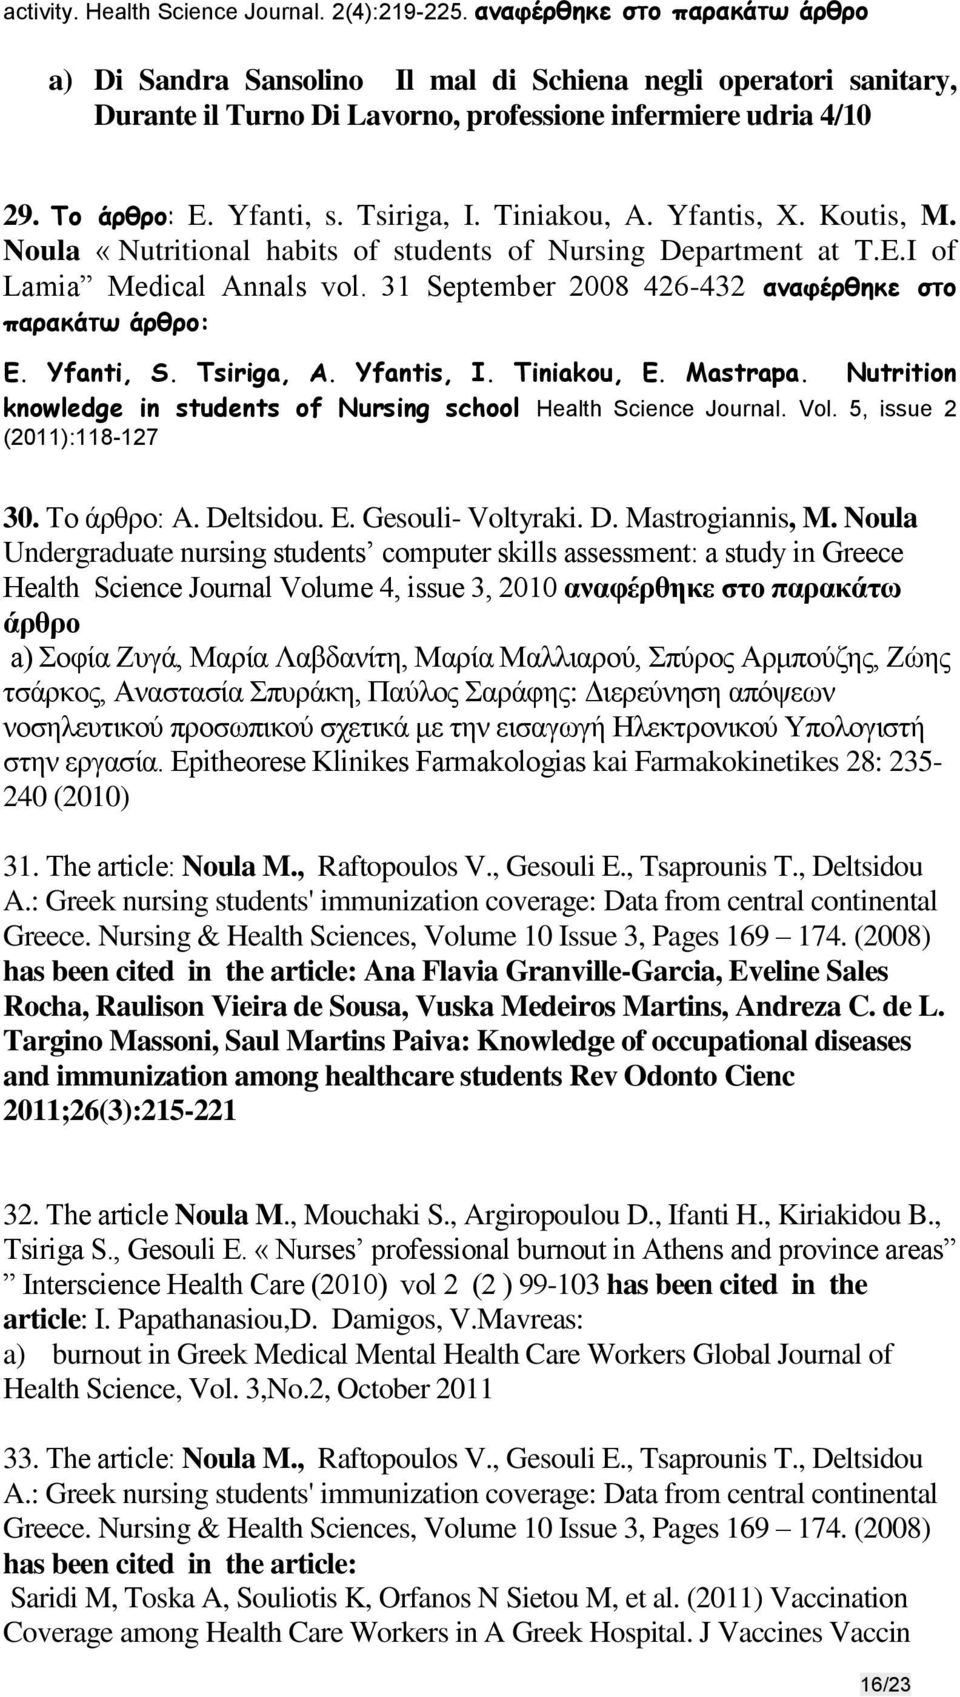 Tiniakou, A. Yfantis, X. Koutis, M. Noula «Nutritional habits of students of Nursing Department at T.E.I of Lamia Medical Annals vol. 31 September 2008 426-432 αναφέρθηκε στο παρακάτω άρθρο: E.